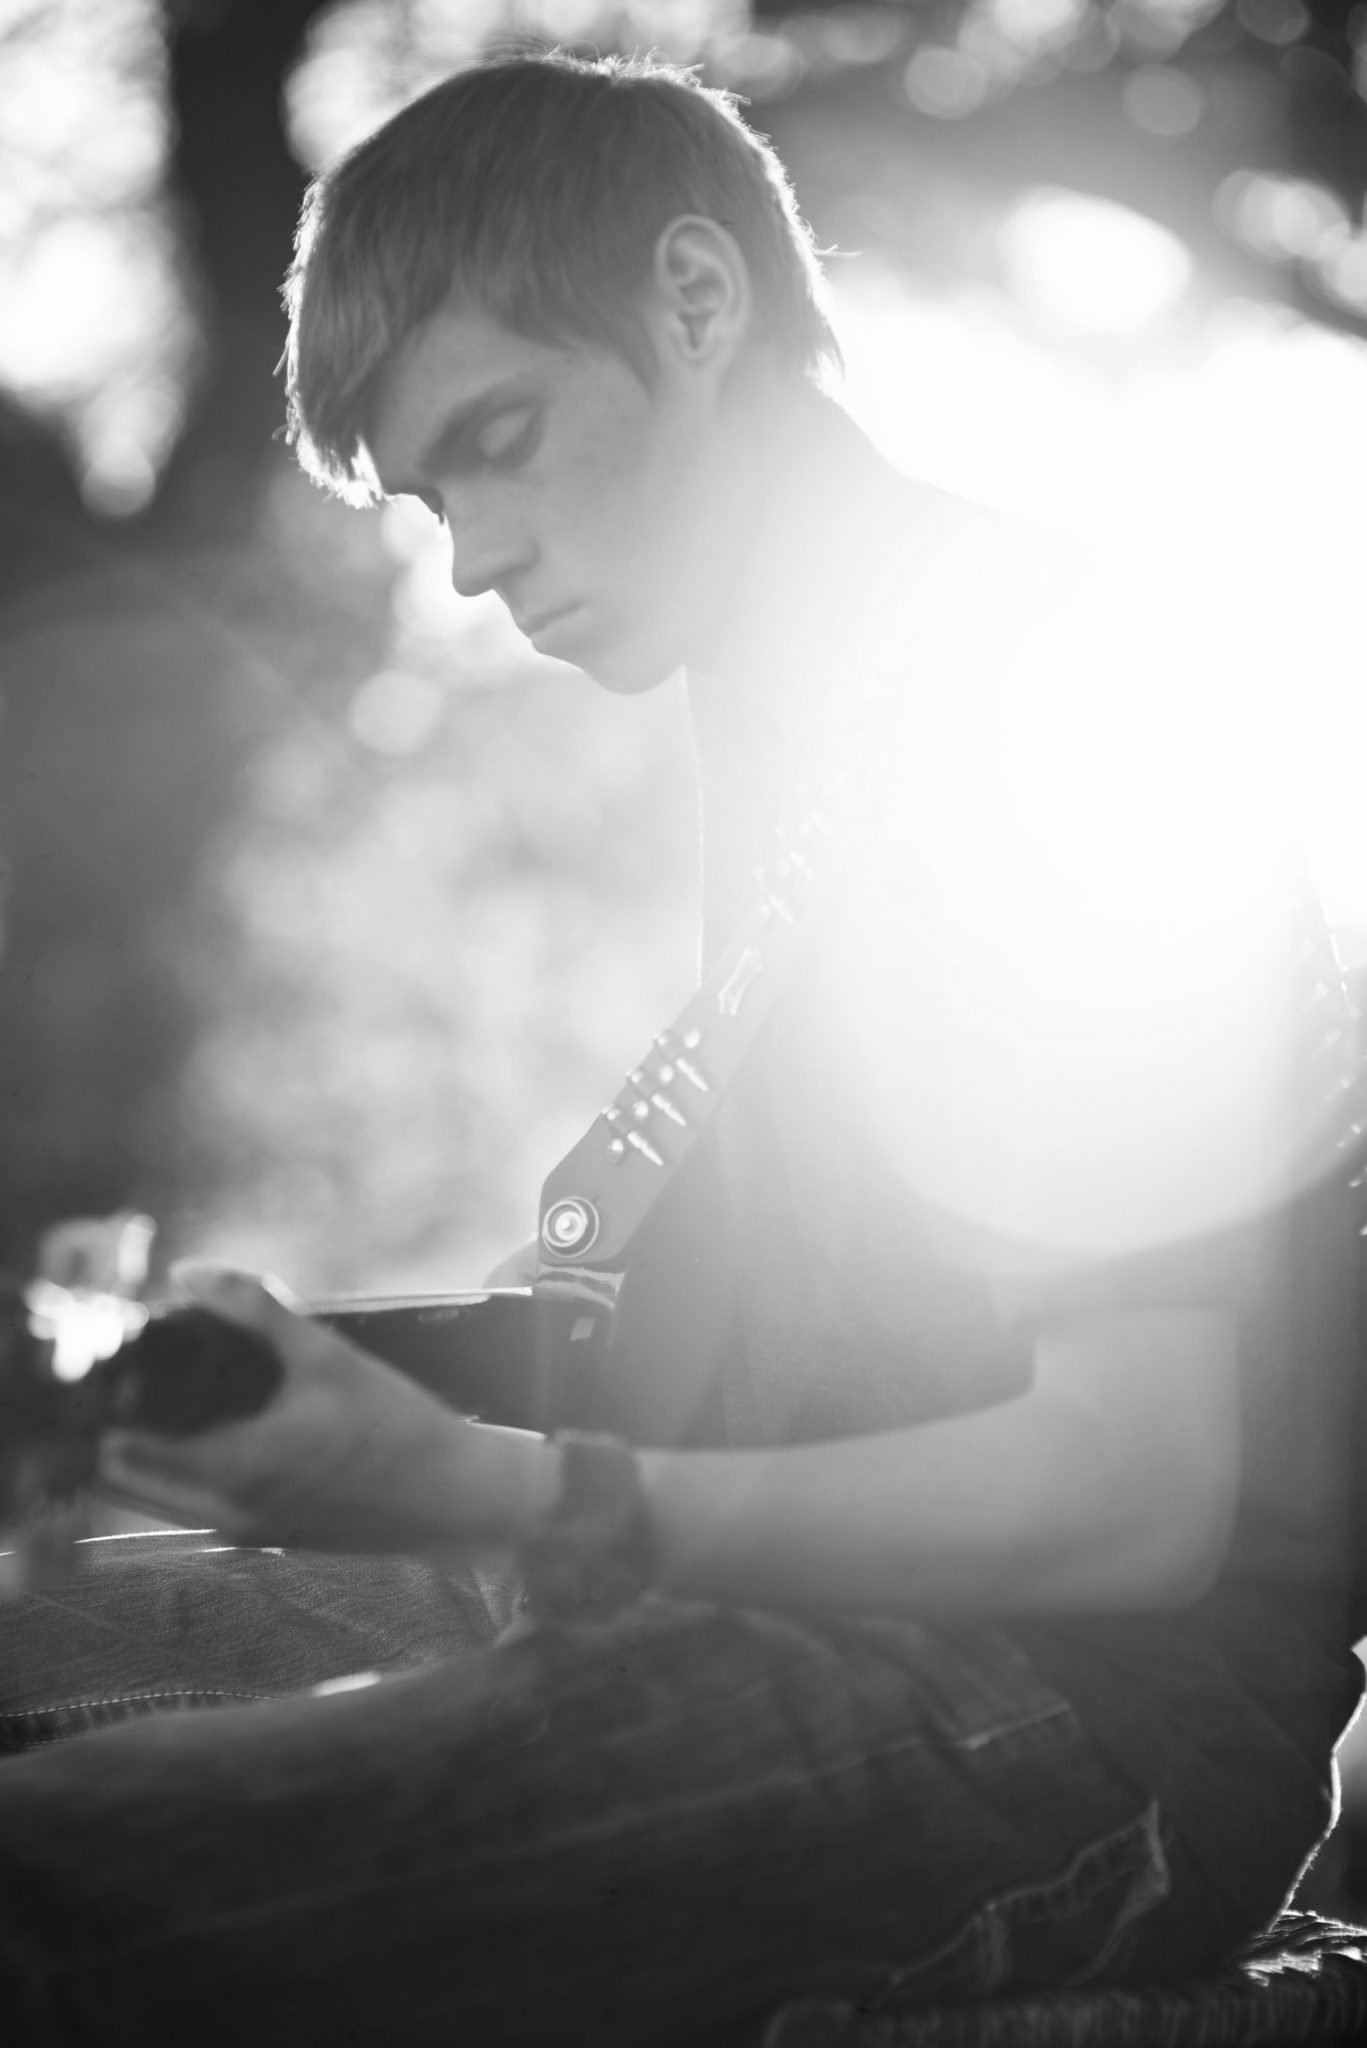 boy playing guitar with light streaming behind him